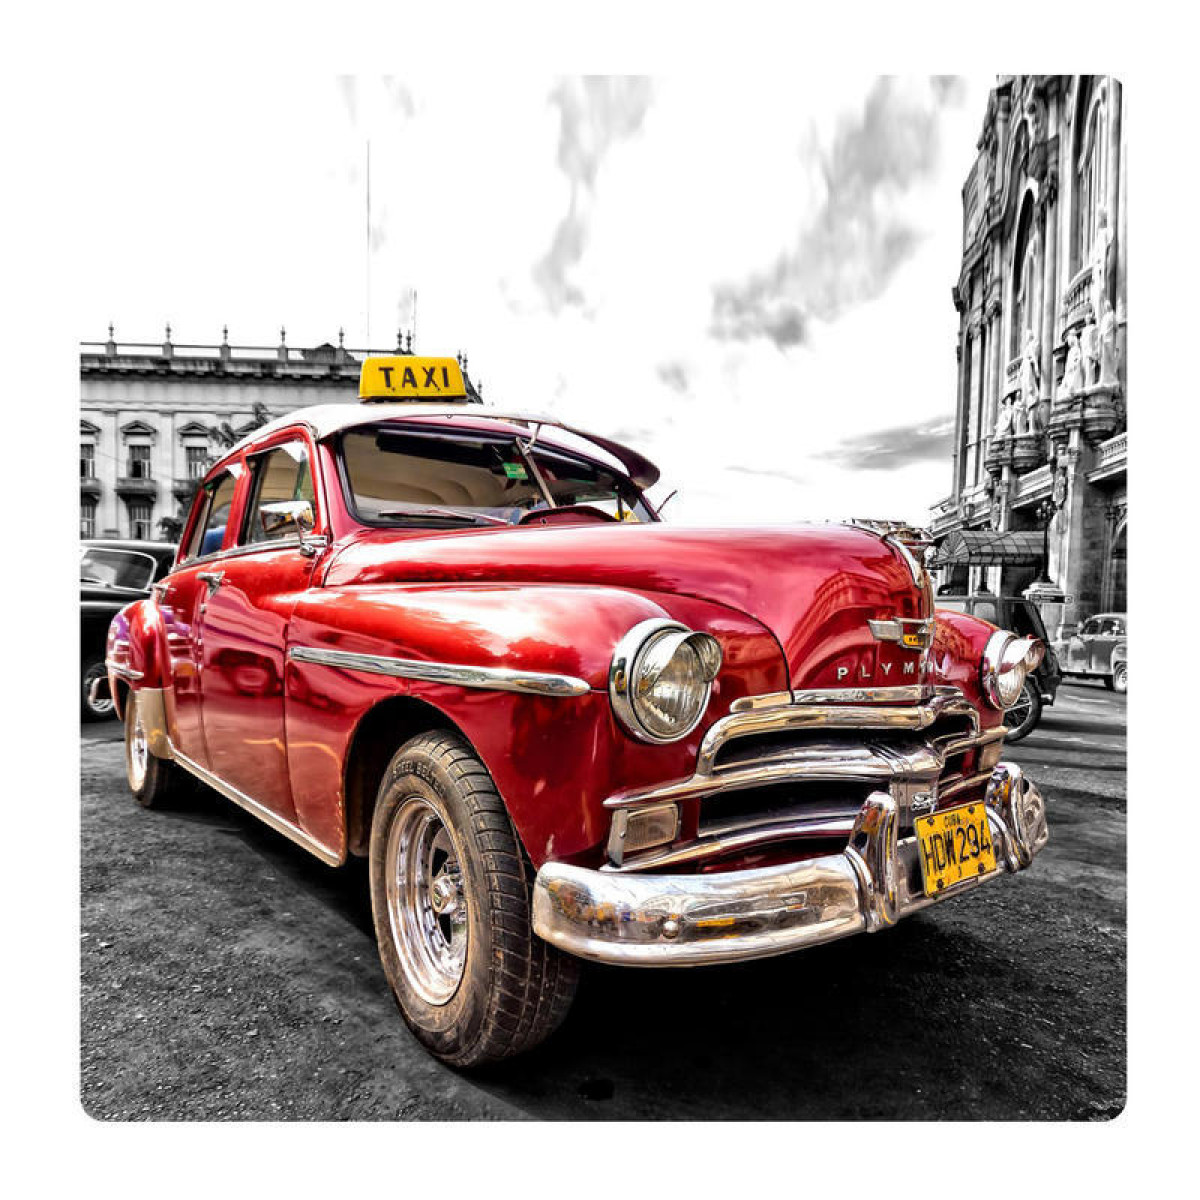 Old taxi, picture on the wall made of plexiglass 29 x 29 cm